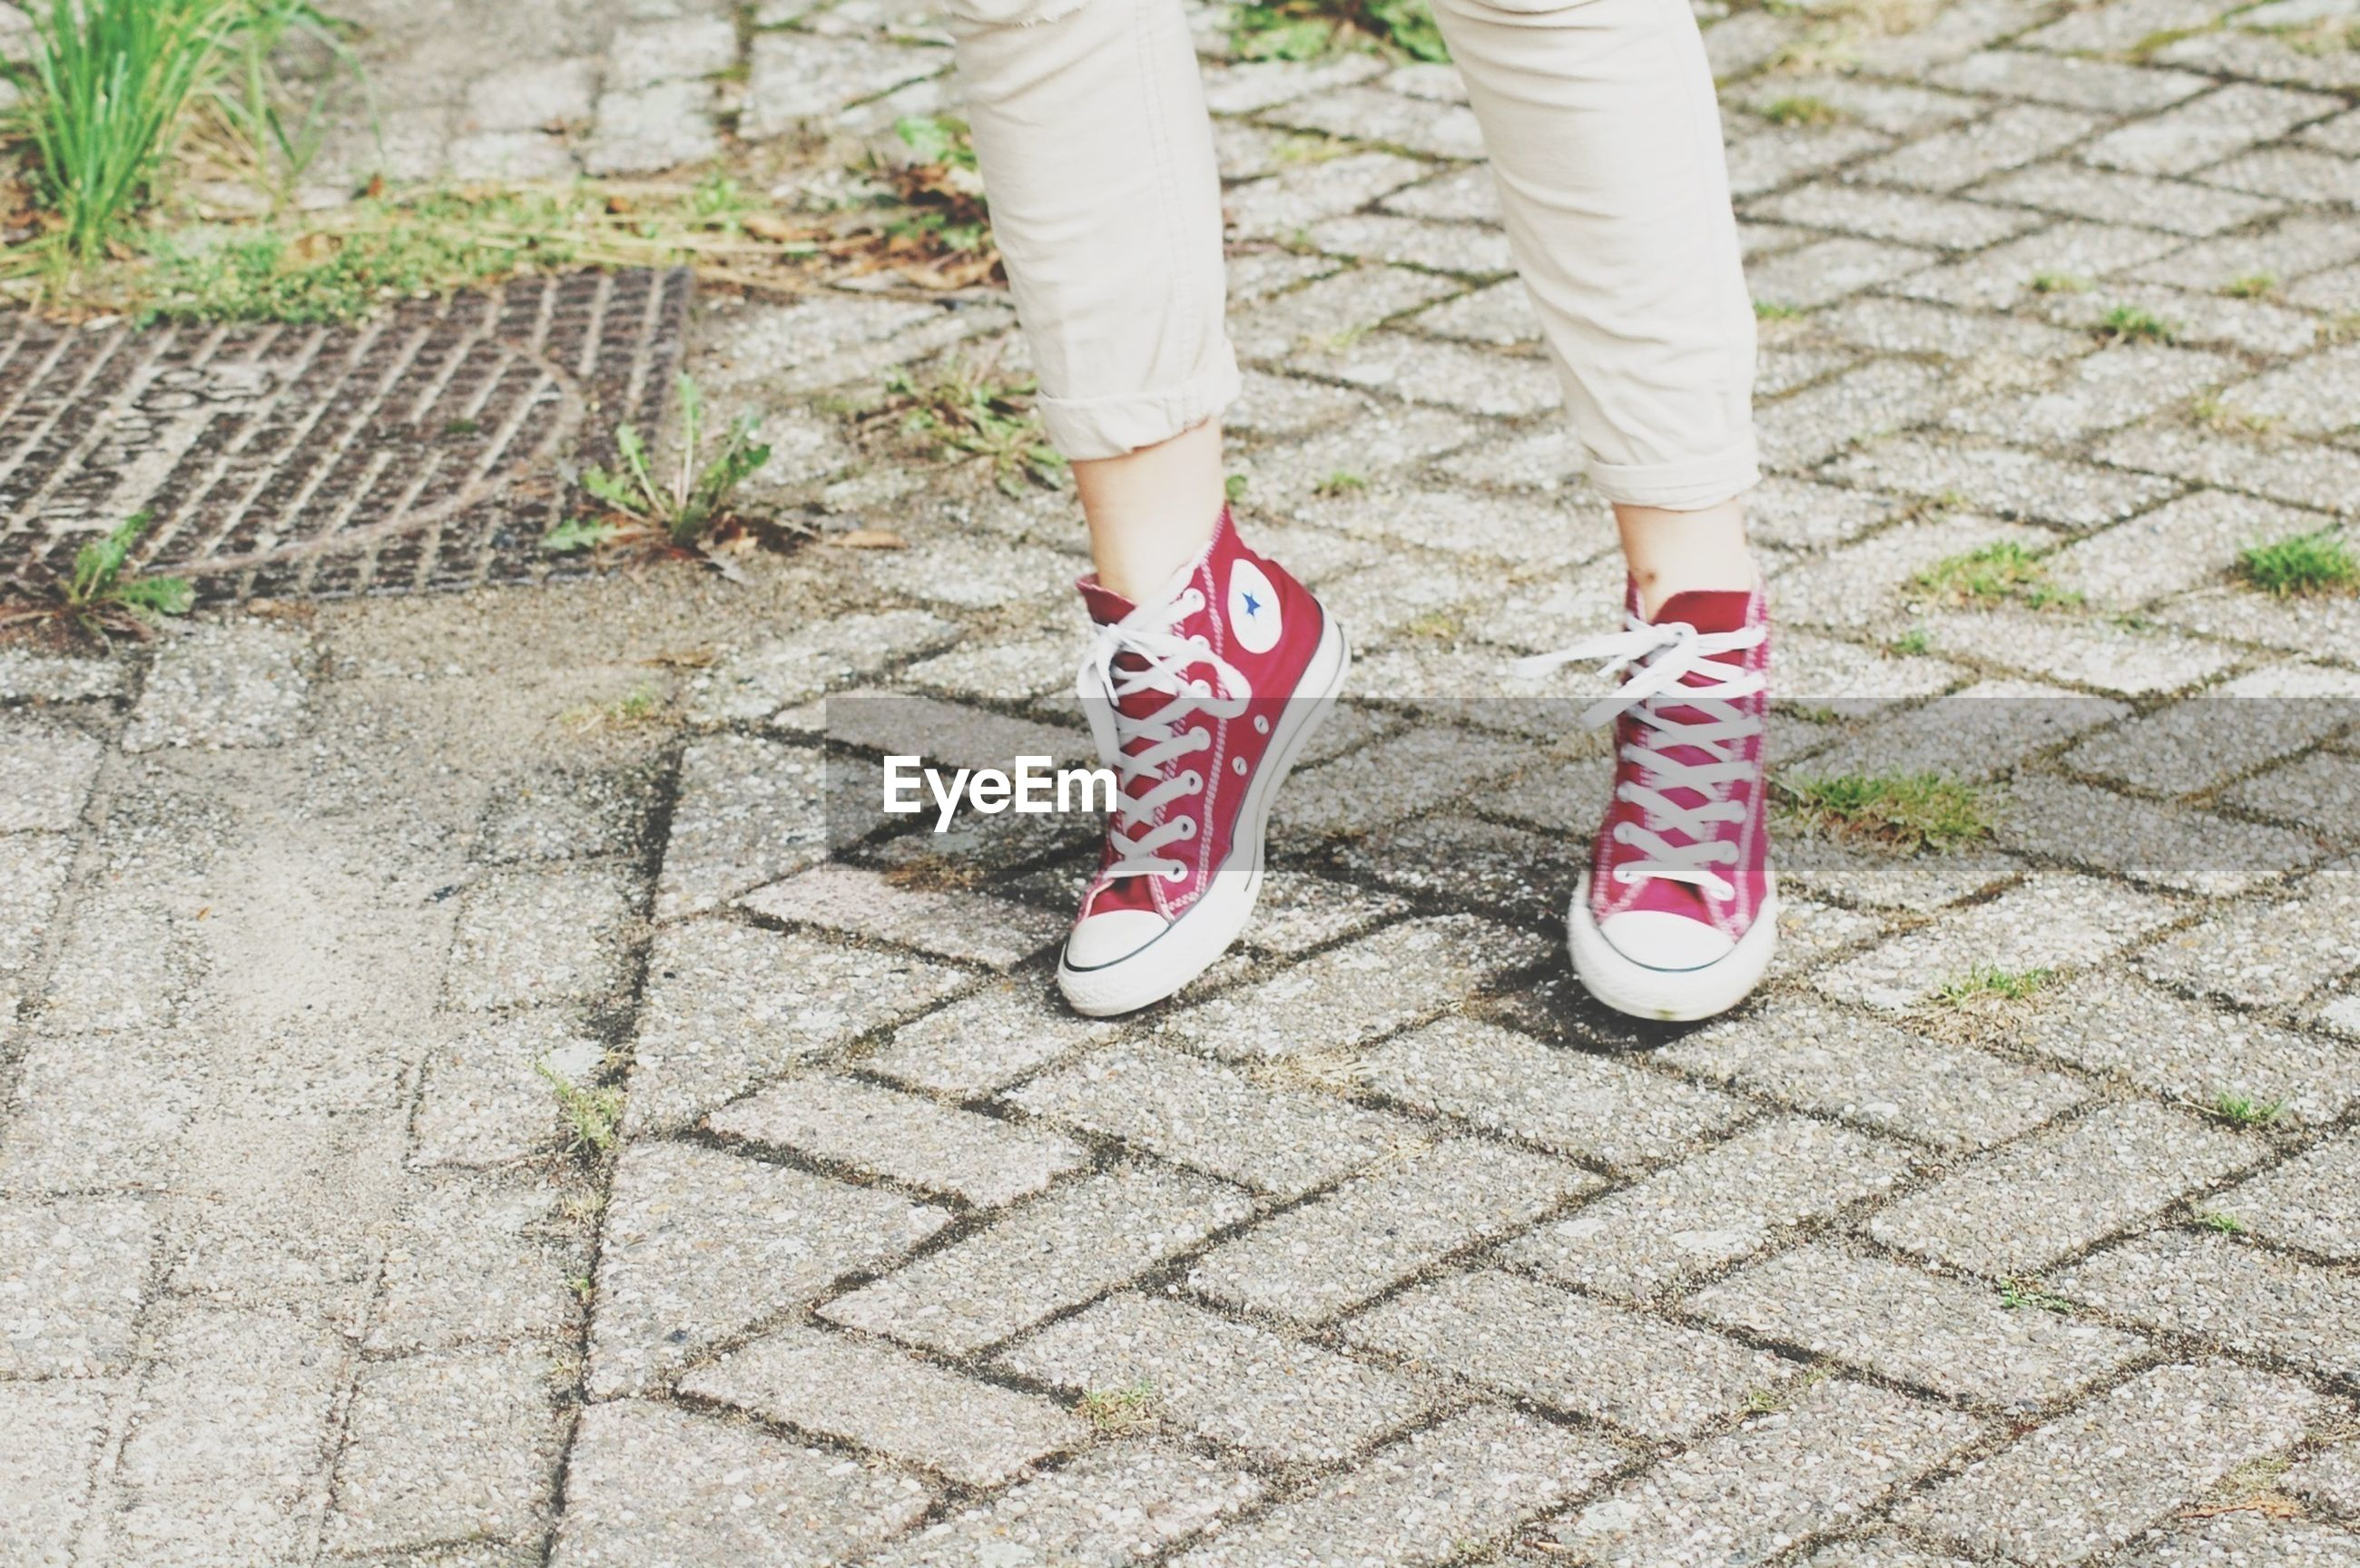 high angle view, text, cobblestone, sidewalk, street, footpath, paving stone, communication, day, low section, outdoors, shoe, safety, western script, protection, red, sunlight, ground, pattern, close-up